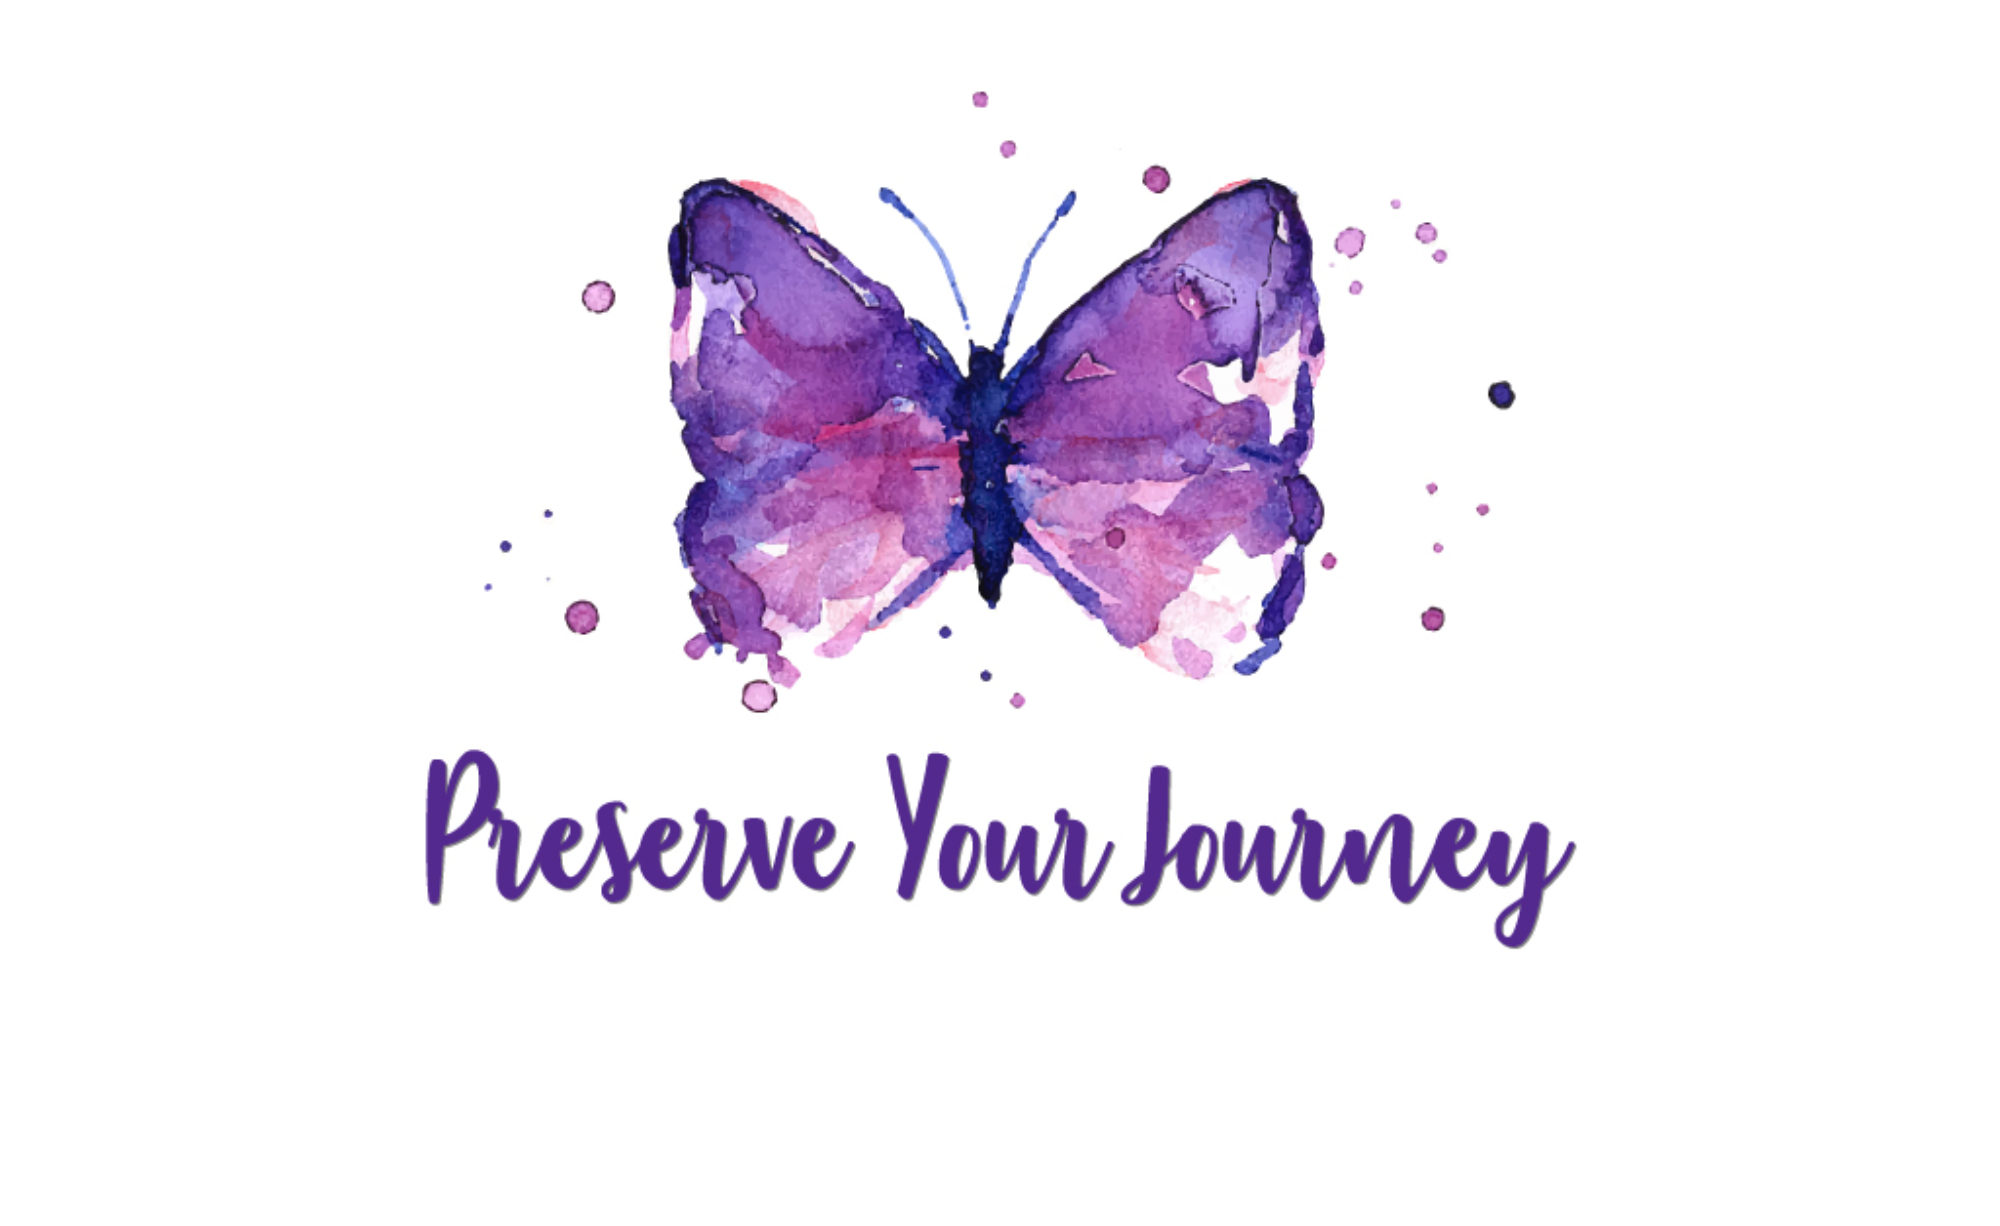 Preserve Your Journey